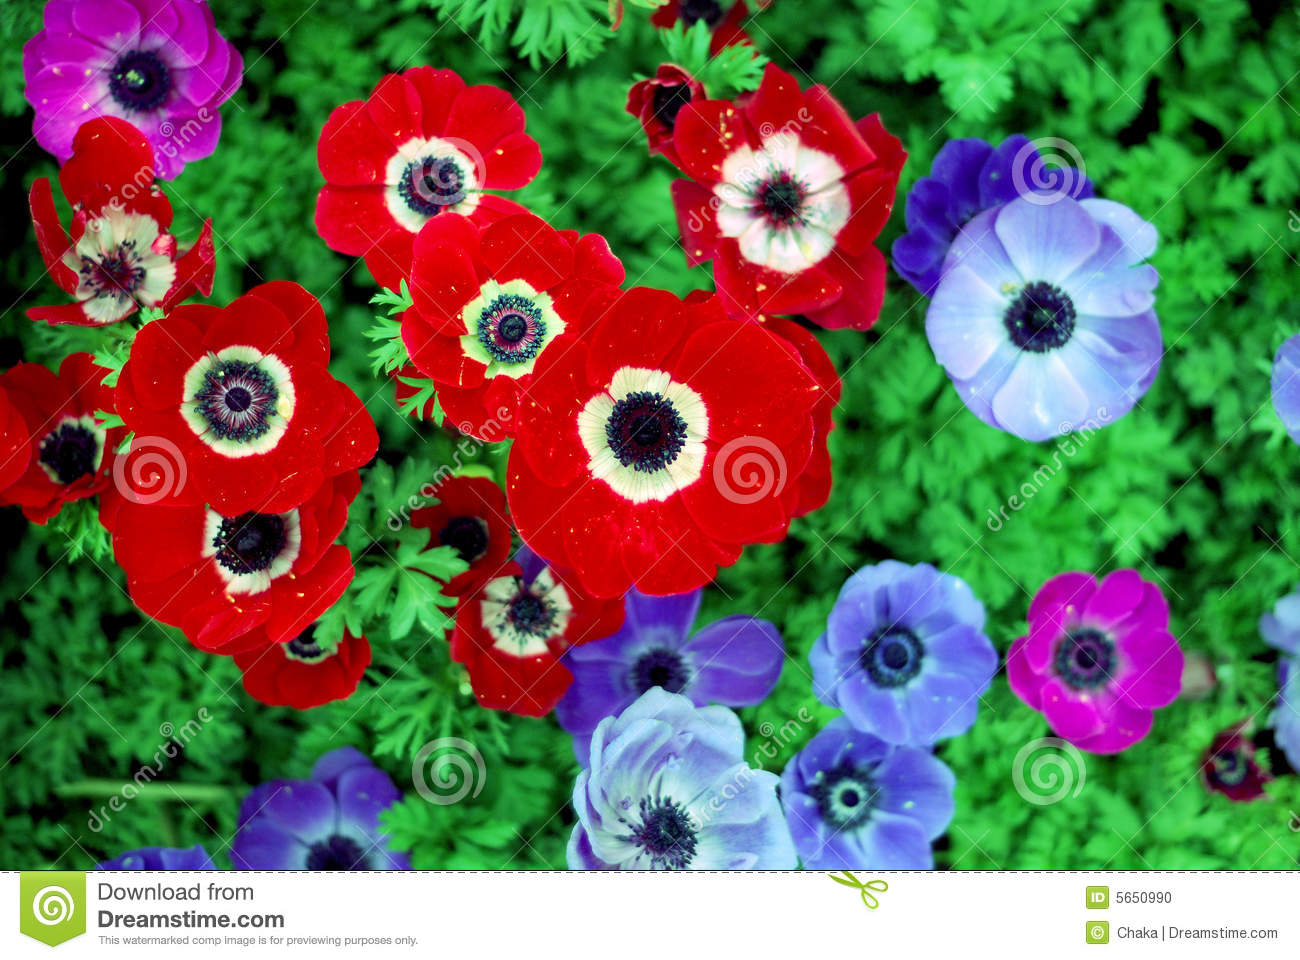 aed7e4ff3ece Red flower and blue flower stock photo. Image of plants - 5650990